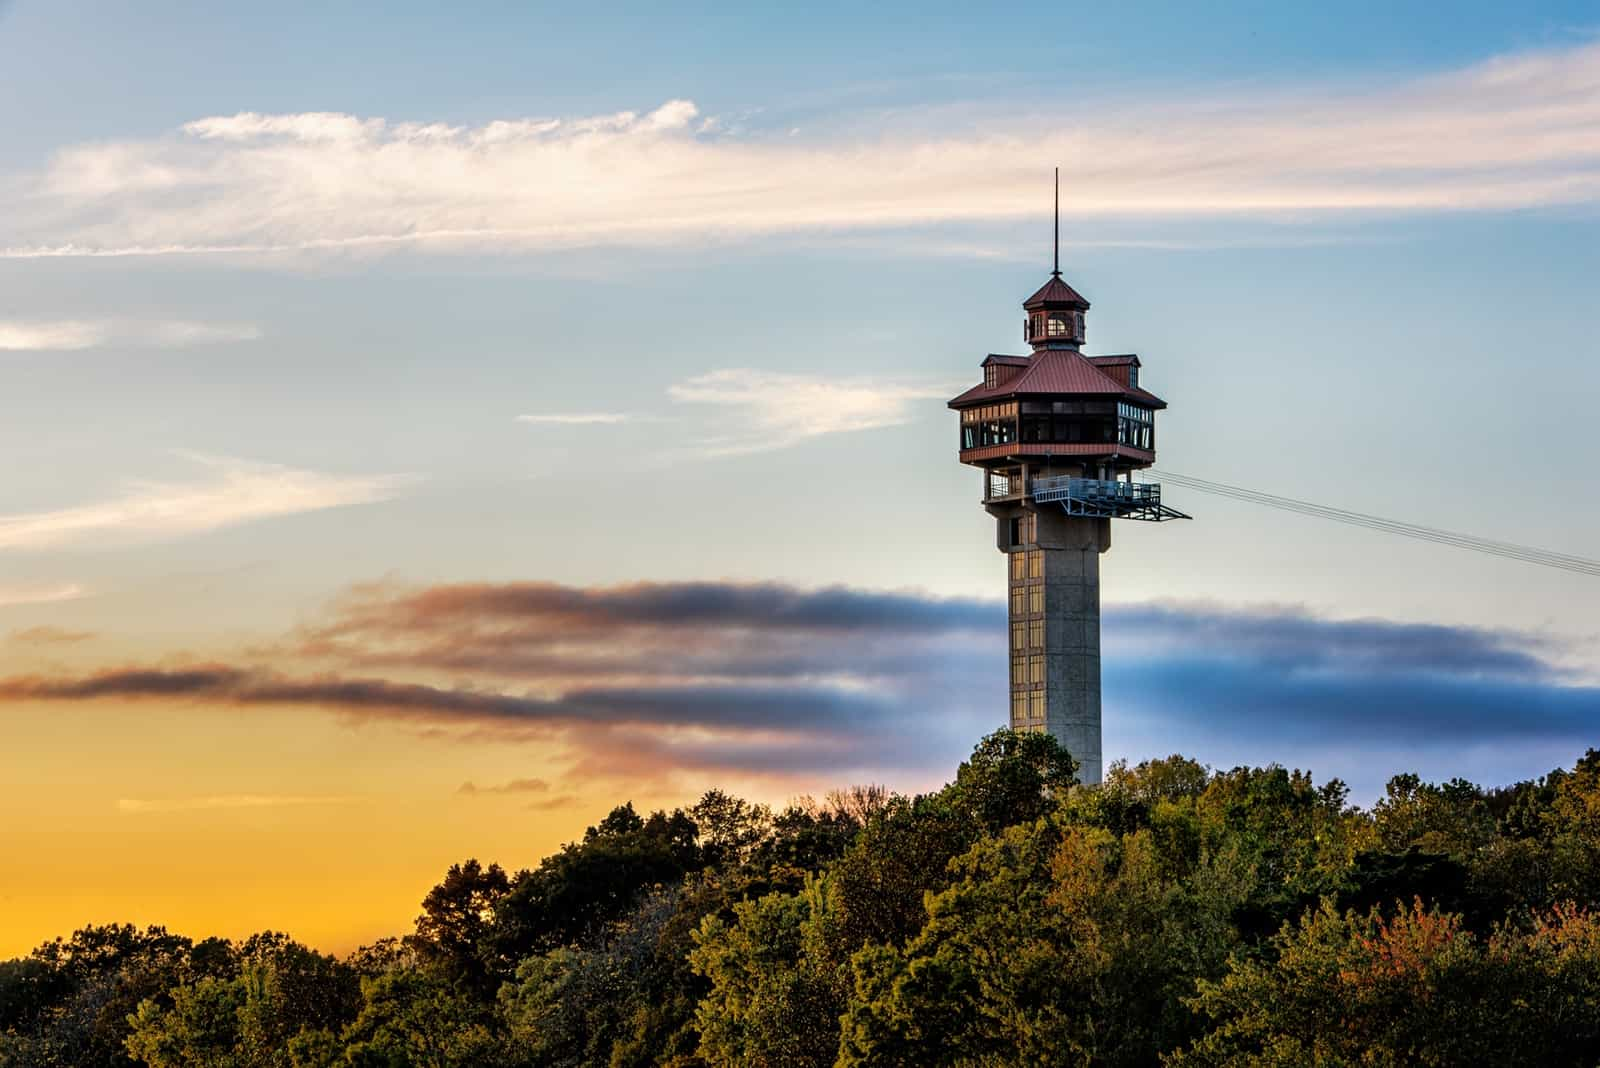 Shepherd_of_the_Hills_Inspiration_Tower_Branson_MO